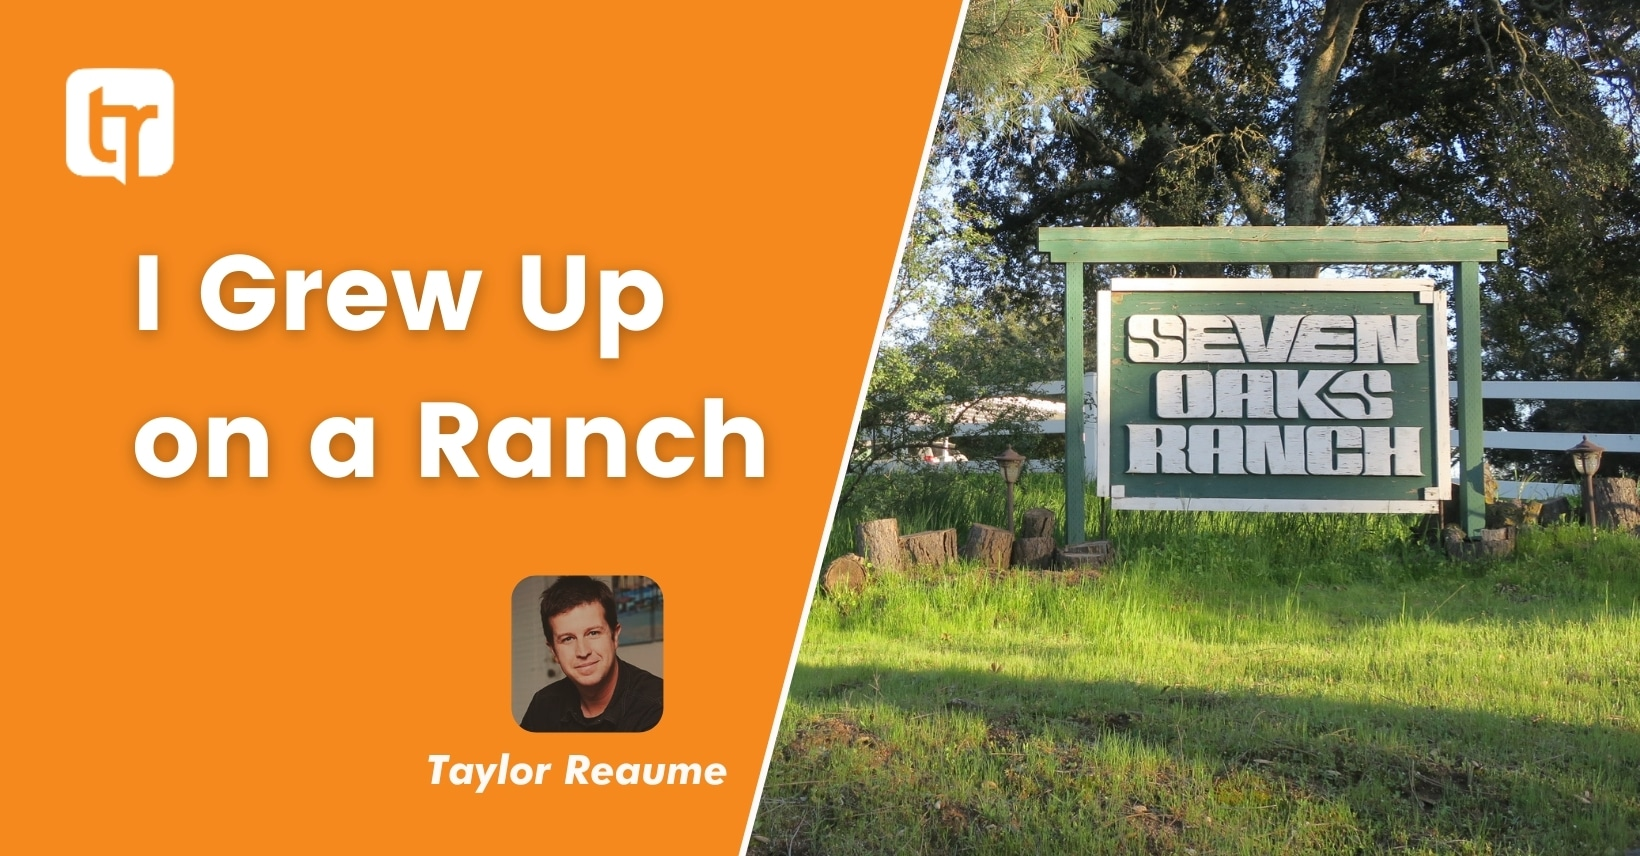 I Grew Up on a Ranch